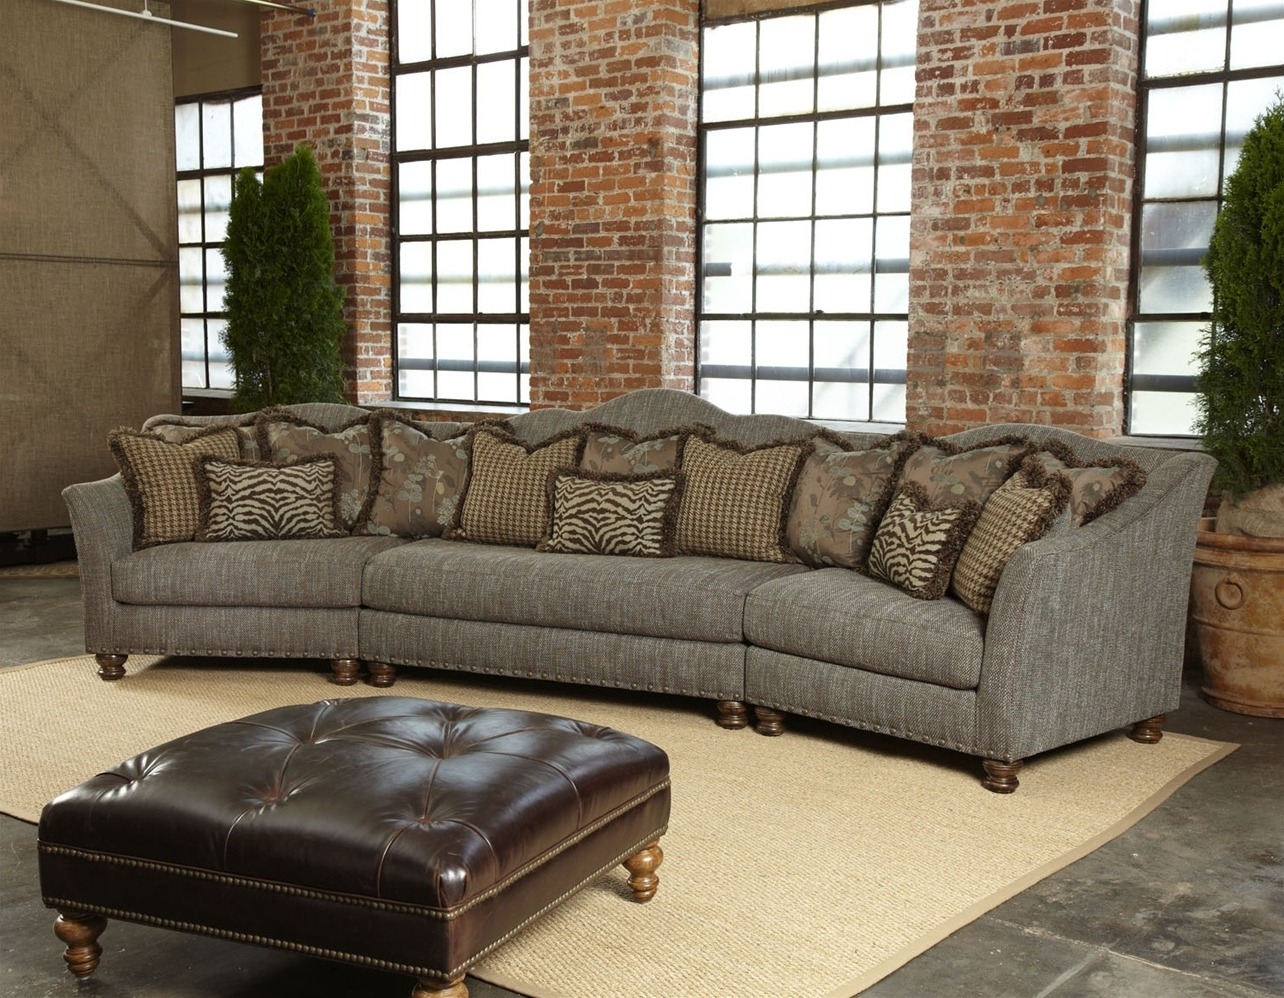 Good Quality Sectional Sofas – Cleanupflorida Throughout Most Current Quality Sectional Sofas (Gallery 5 of 15)